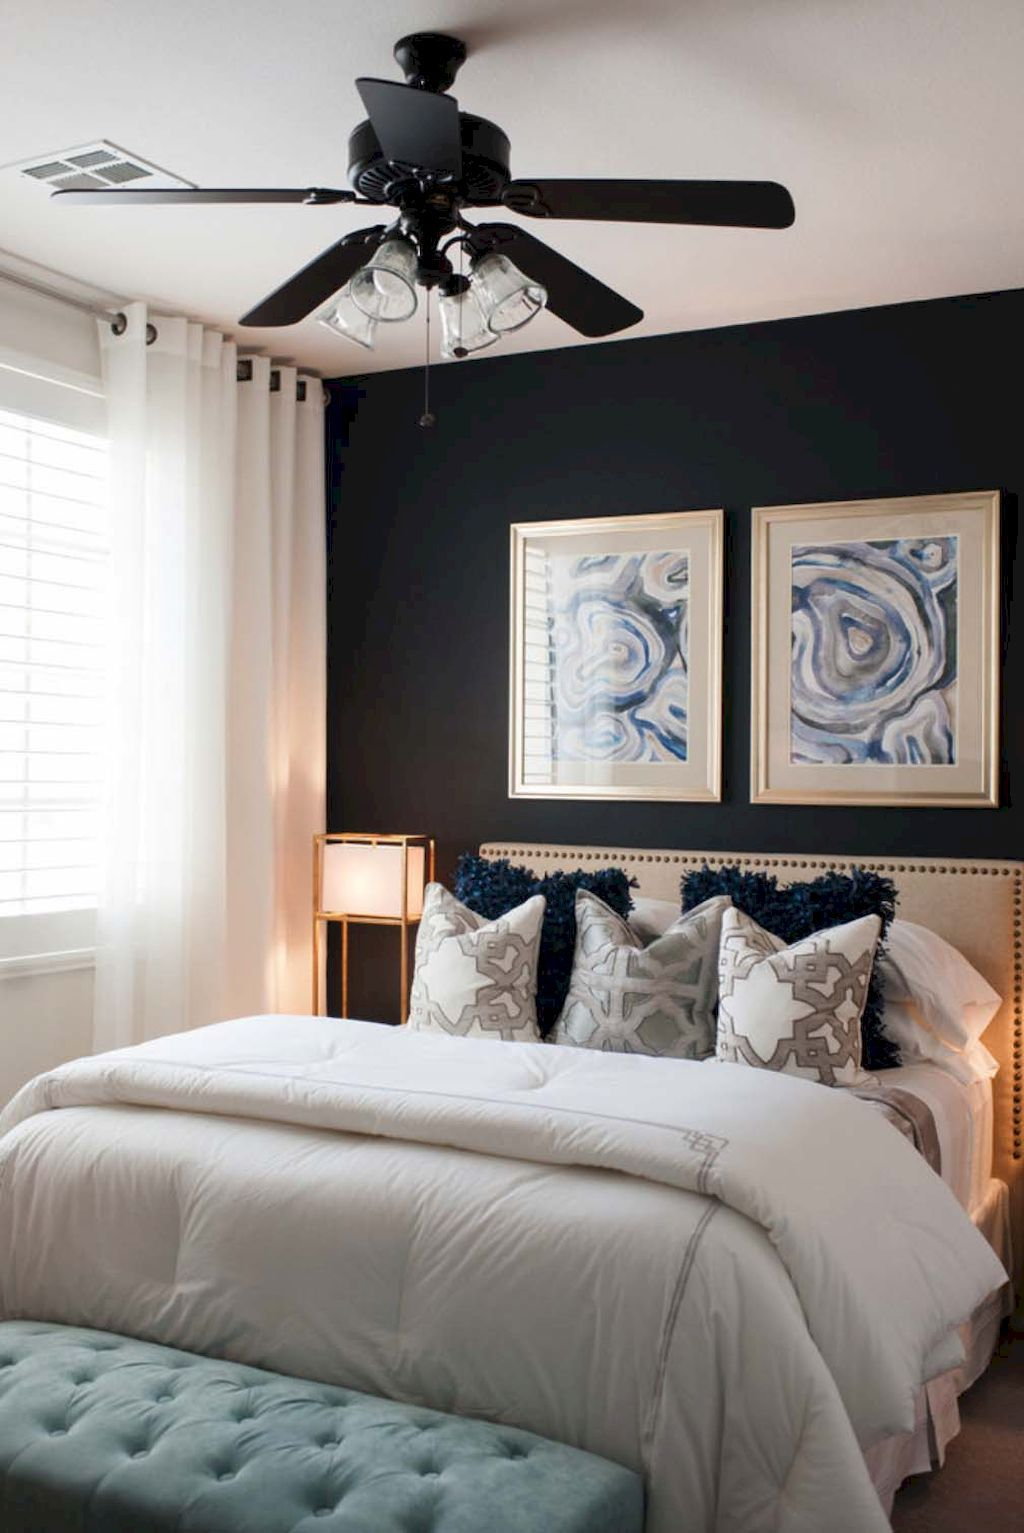 75 Small Master Bedroom Decorating Ideas | Small master bedroom ...